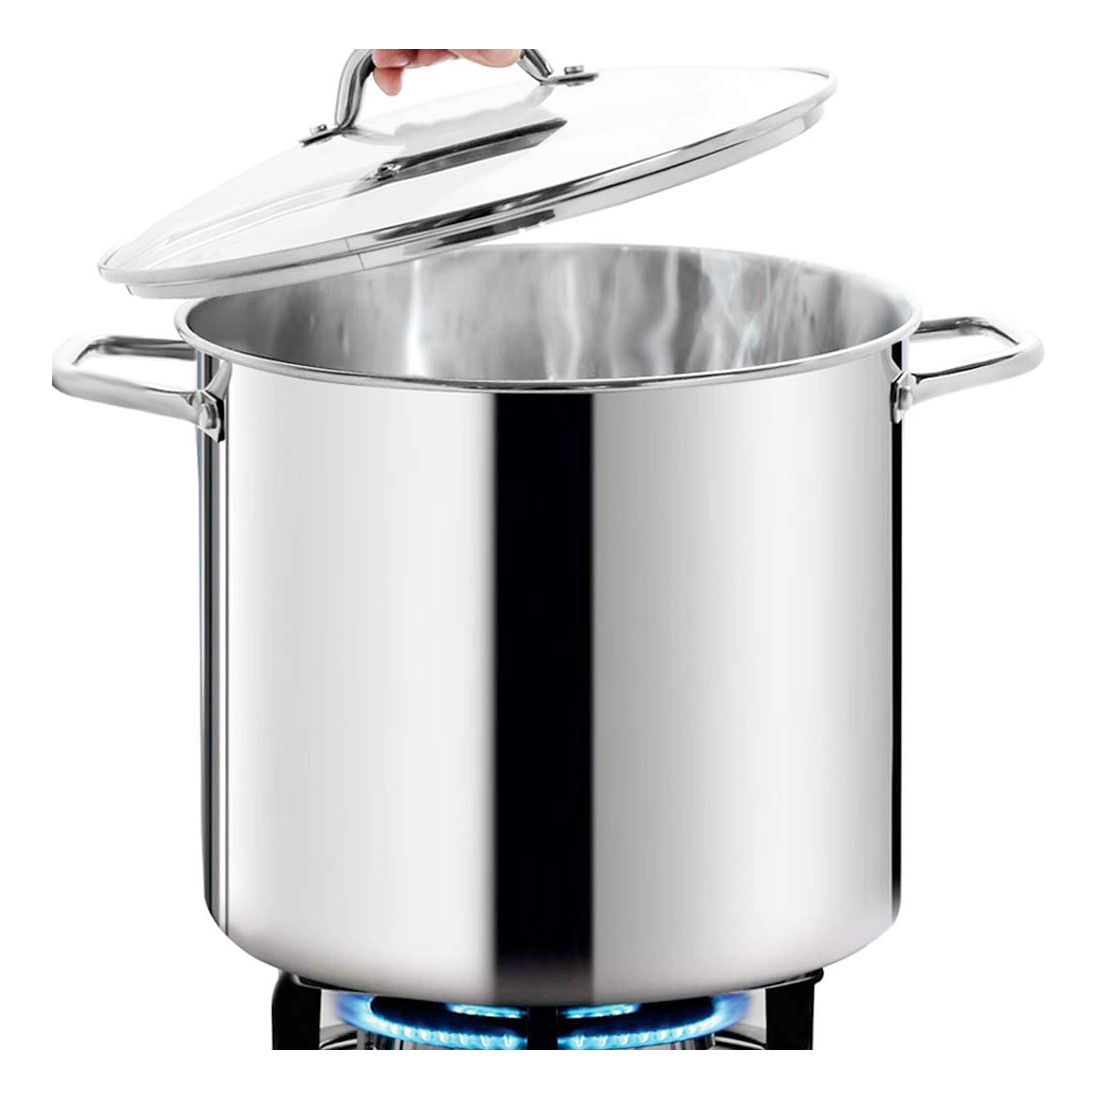 HOMICHEF Large Nickel Free Stainless Steel Stock Pot